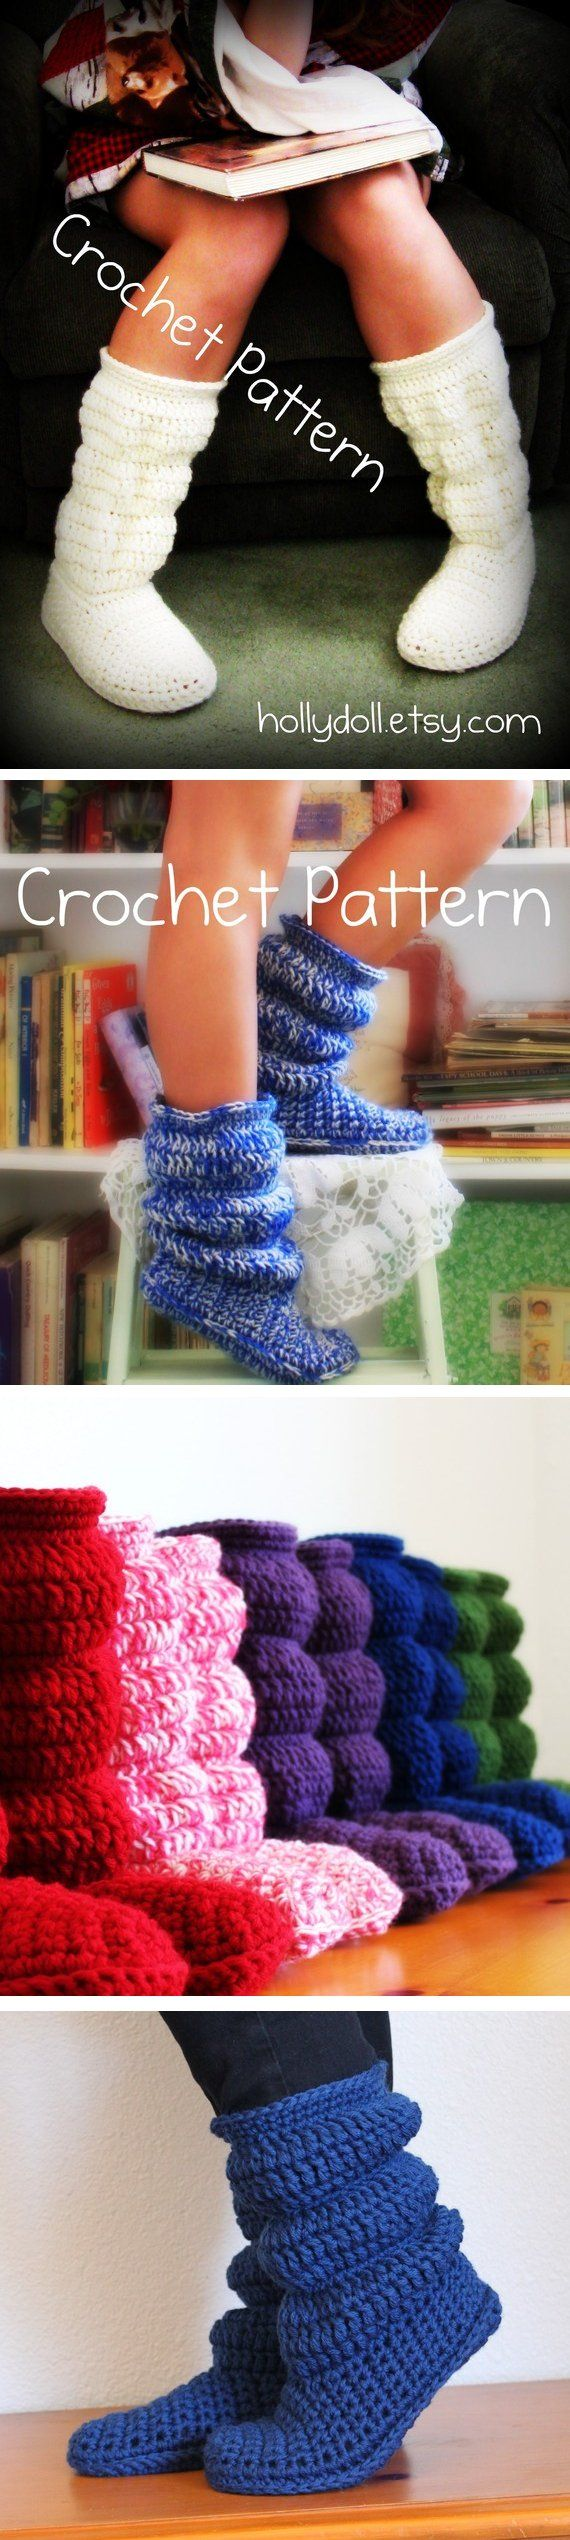 Hollydoll crocheted boot slippers - *Inspiration*